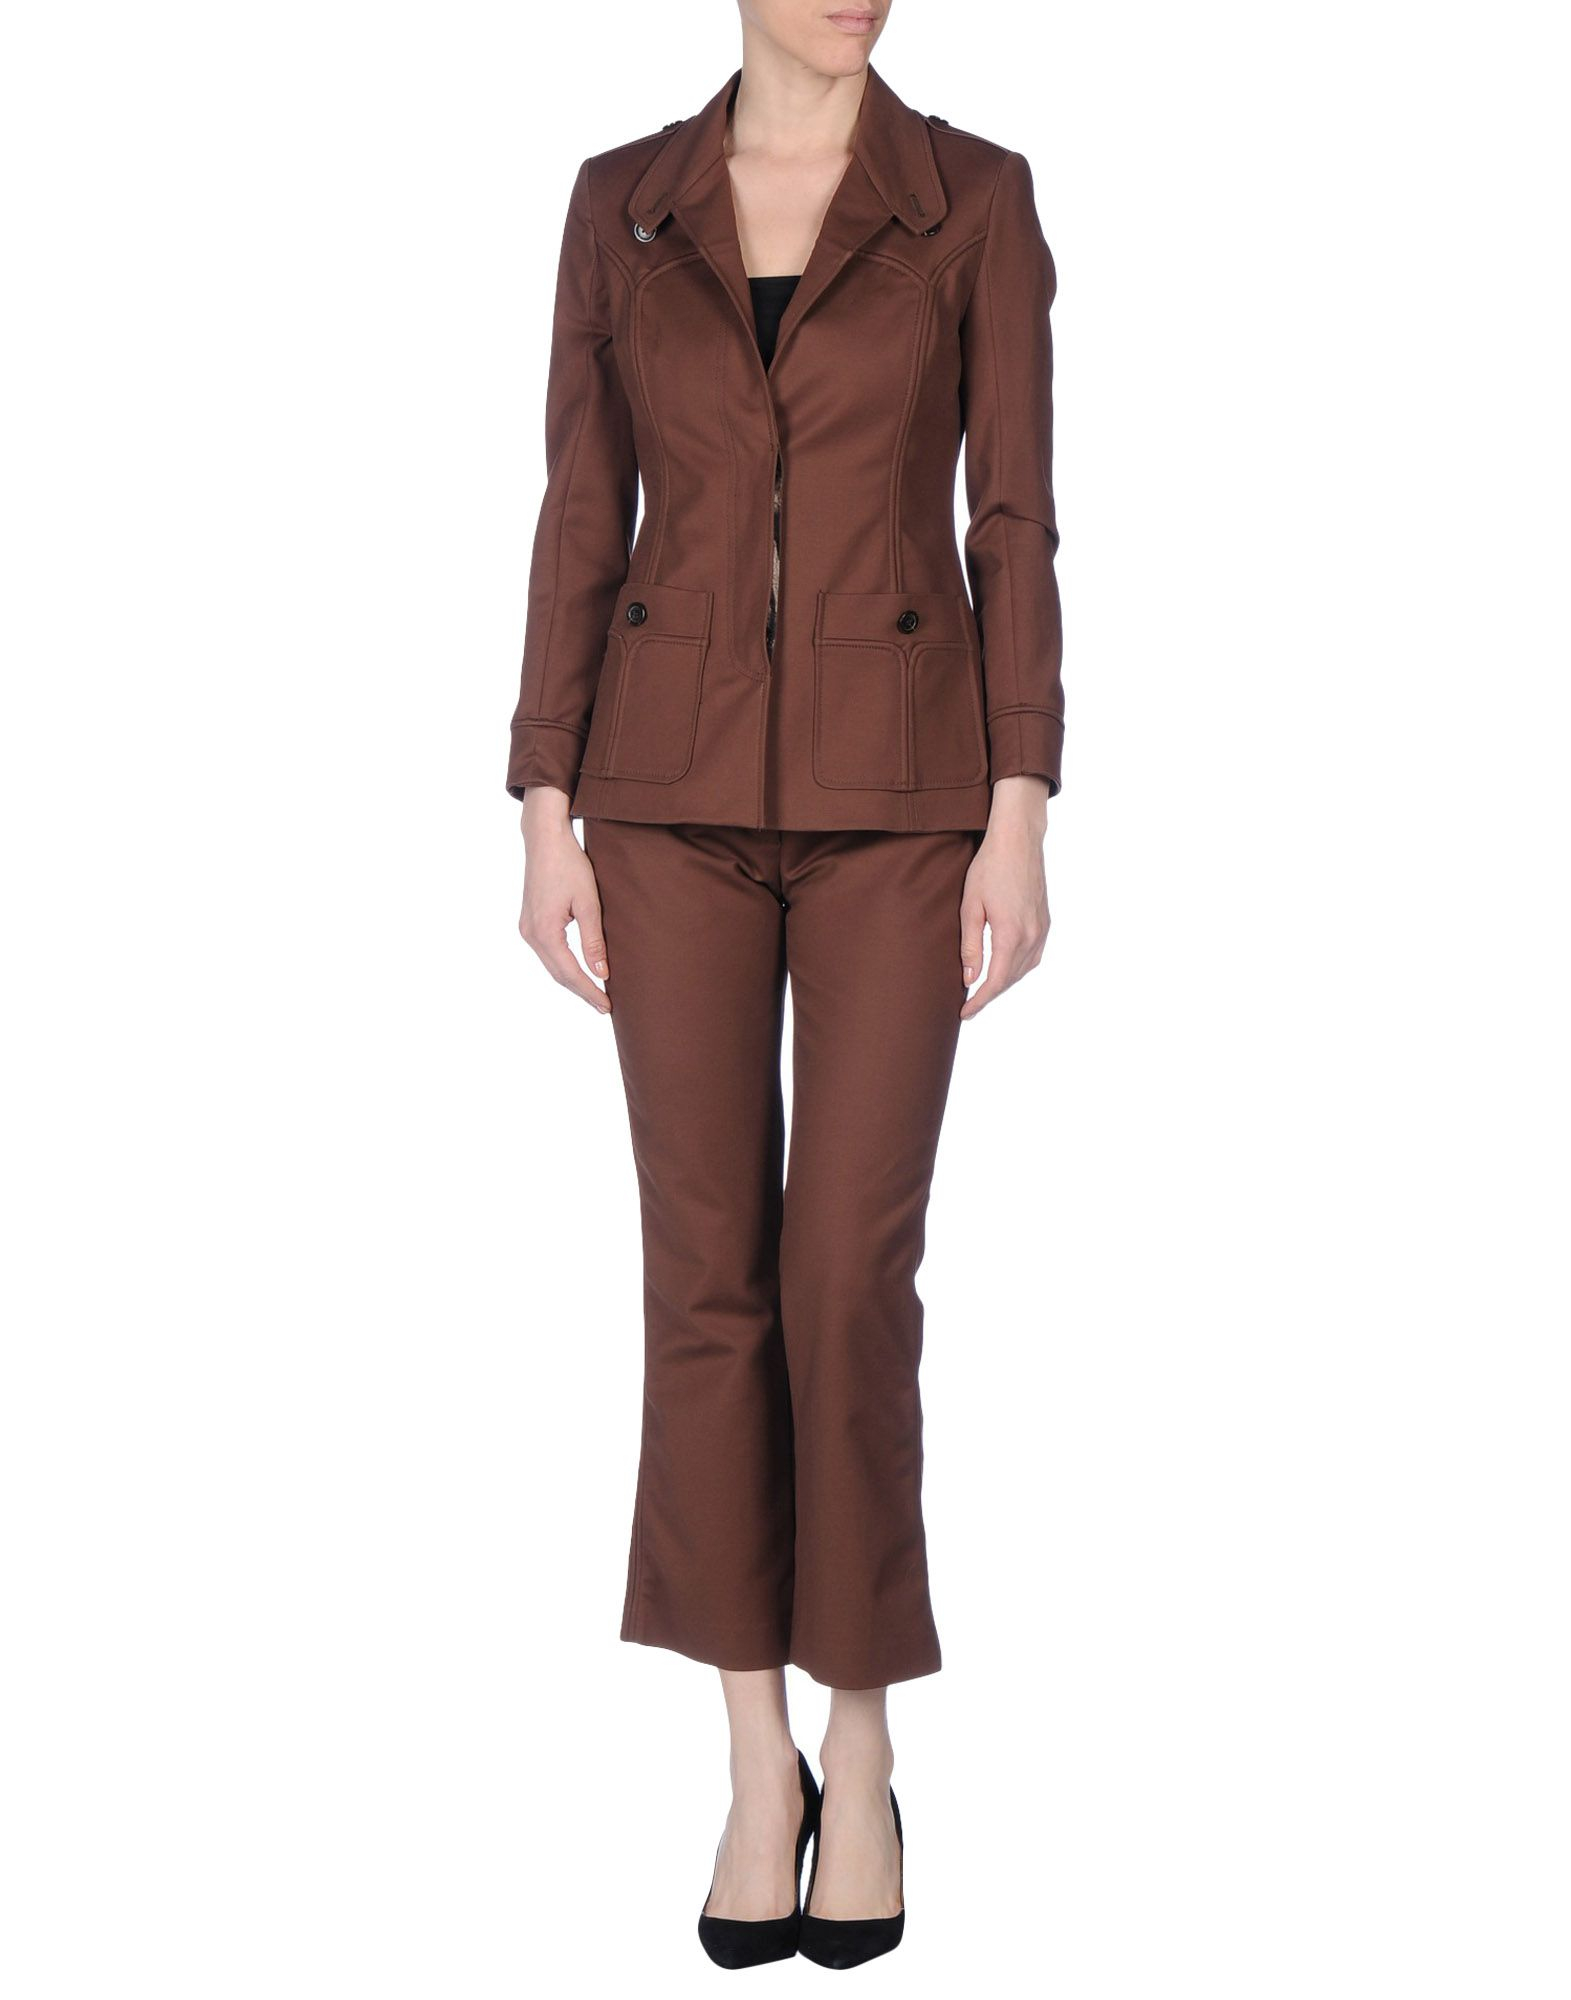 Find women's brown skirt suit at ShopStyle. Shop the latest collection of women's brown skirt suit from the most popular stores - all in one place.